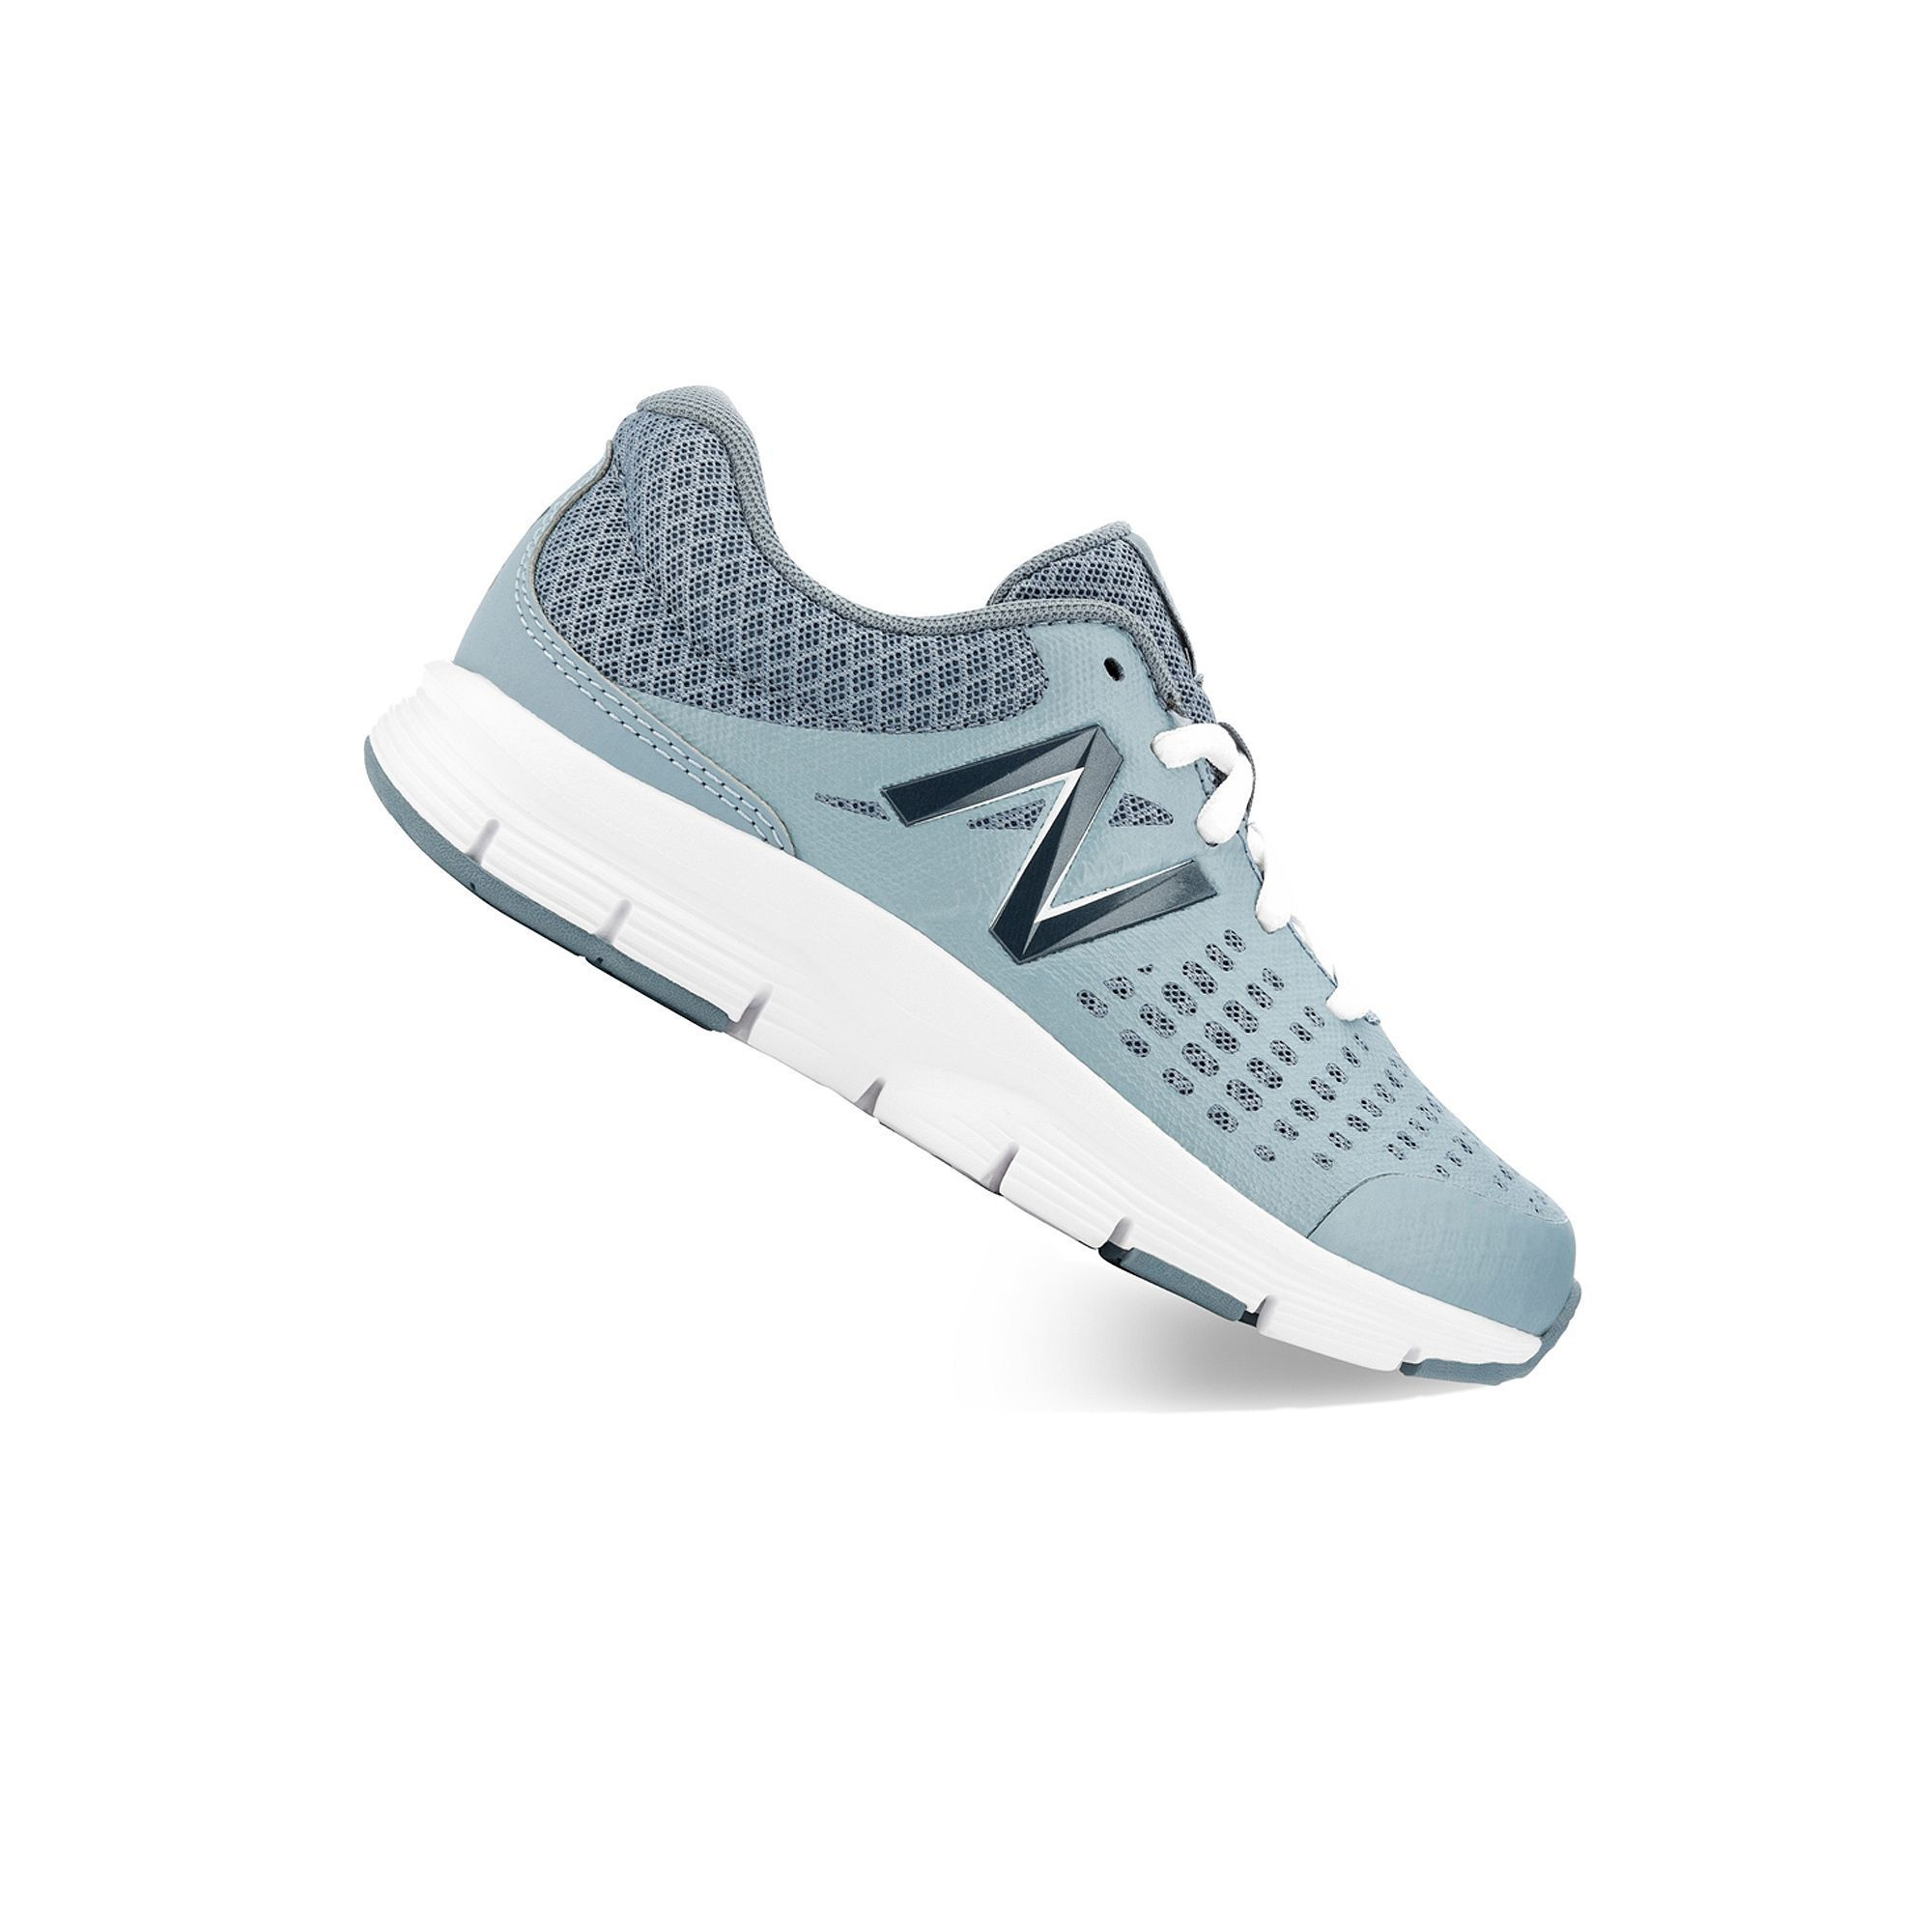 06c9408eec New Balance 775 Lightweight Kids' Running Shoes | Products | Kids ...